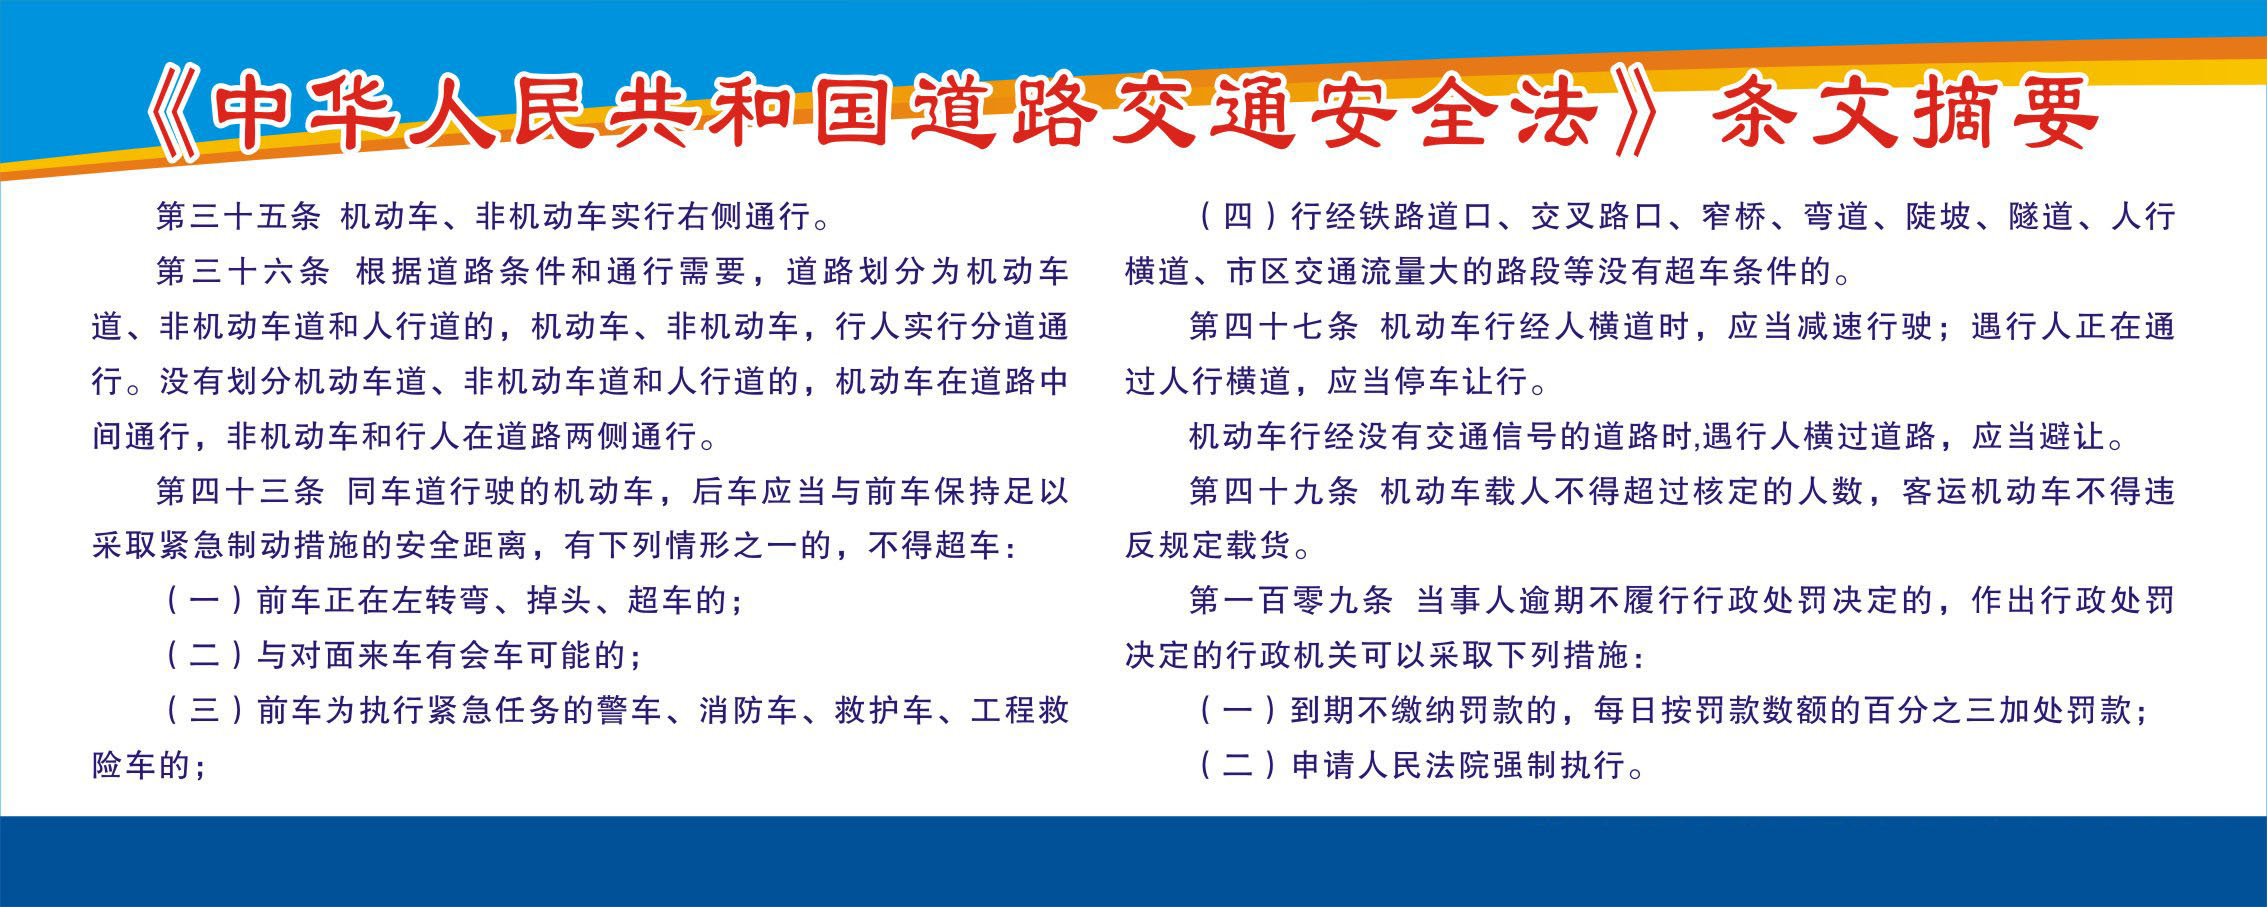 724 posters printed photo 1261 driving traffic signs and operational safety system 21 road traffic safety law